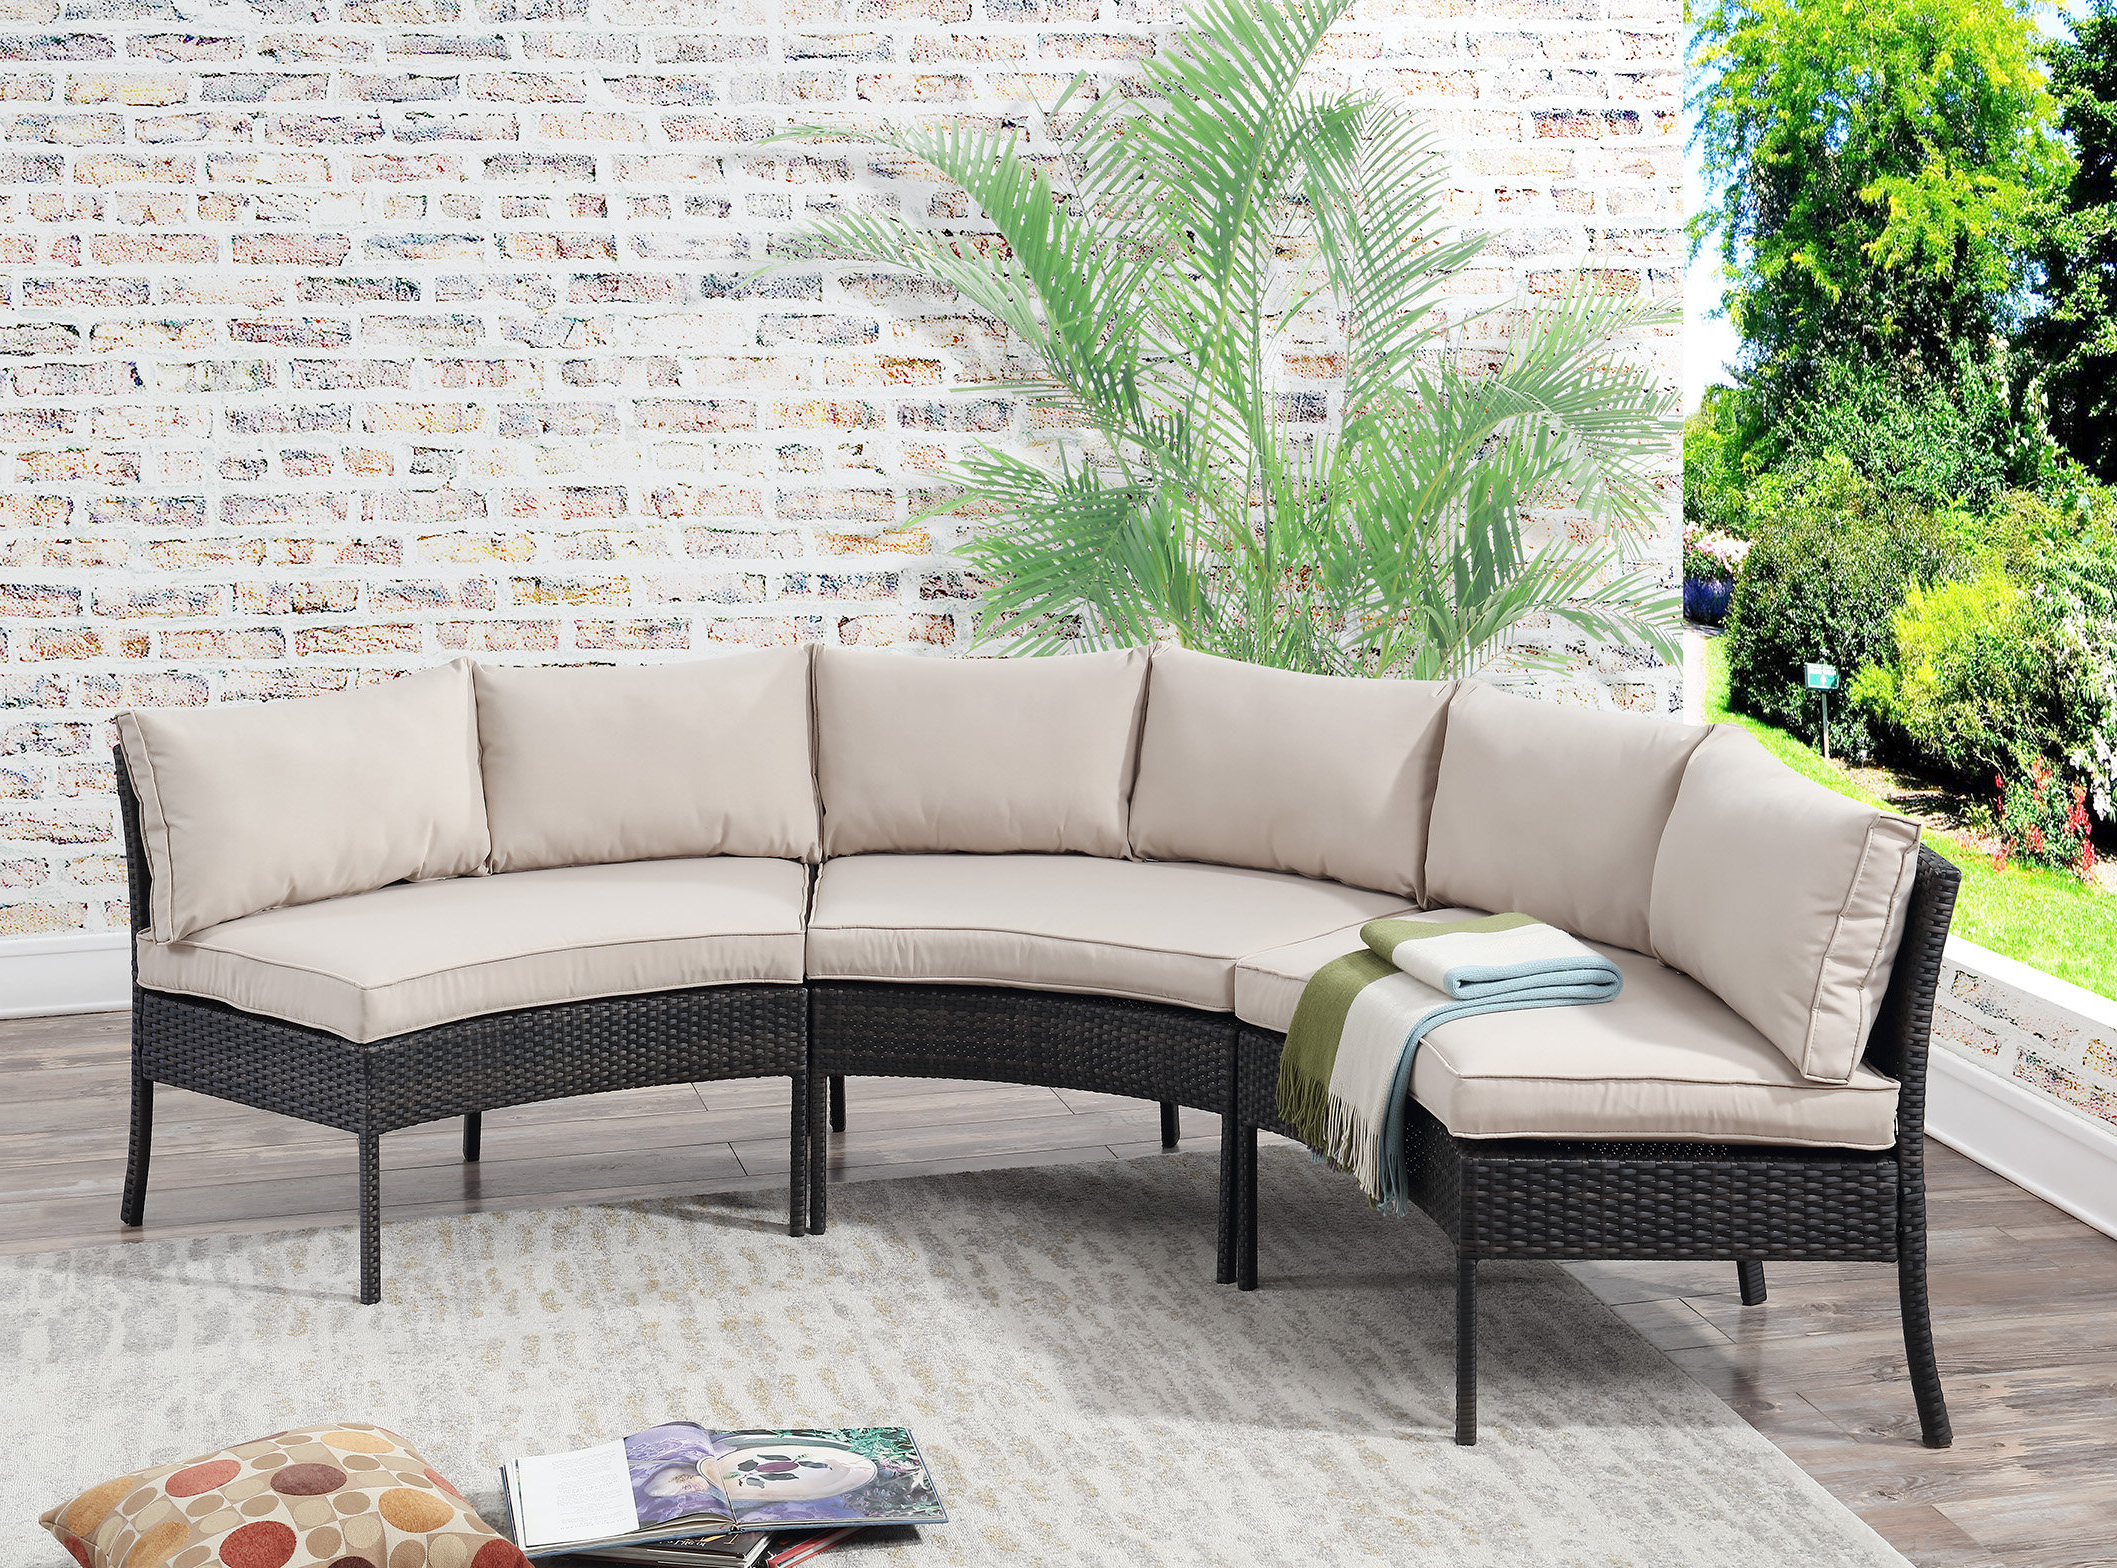 Burruss Patio Sectionals With Cushions Throughout Most Recent Purington Circular Patio Sectional With Cushions (Gallery 22 of 25)